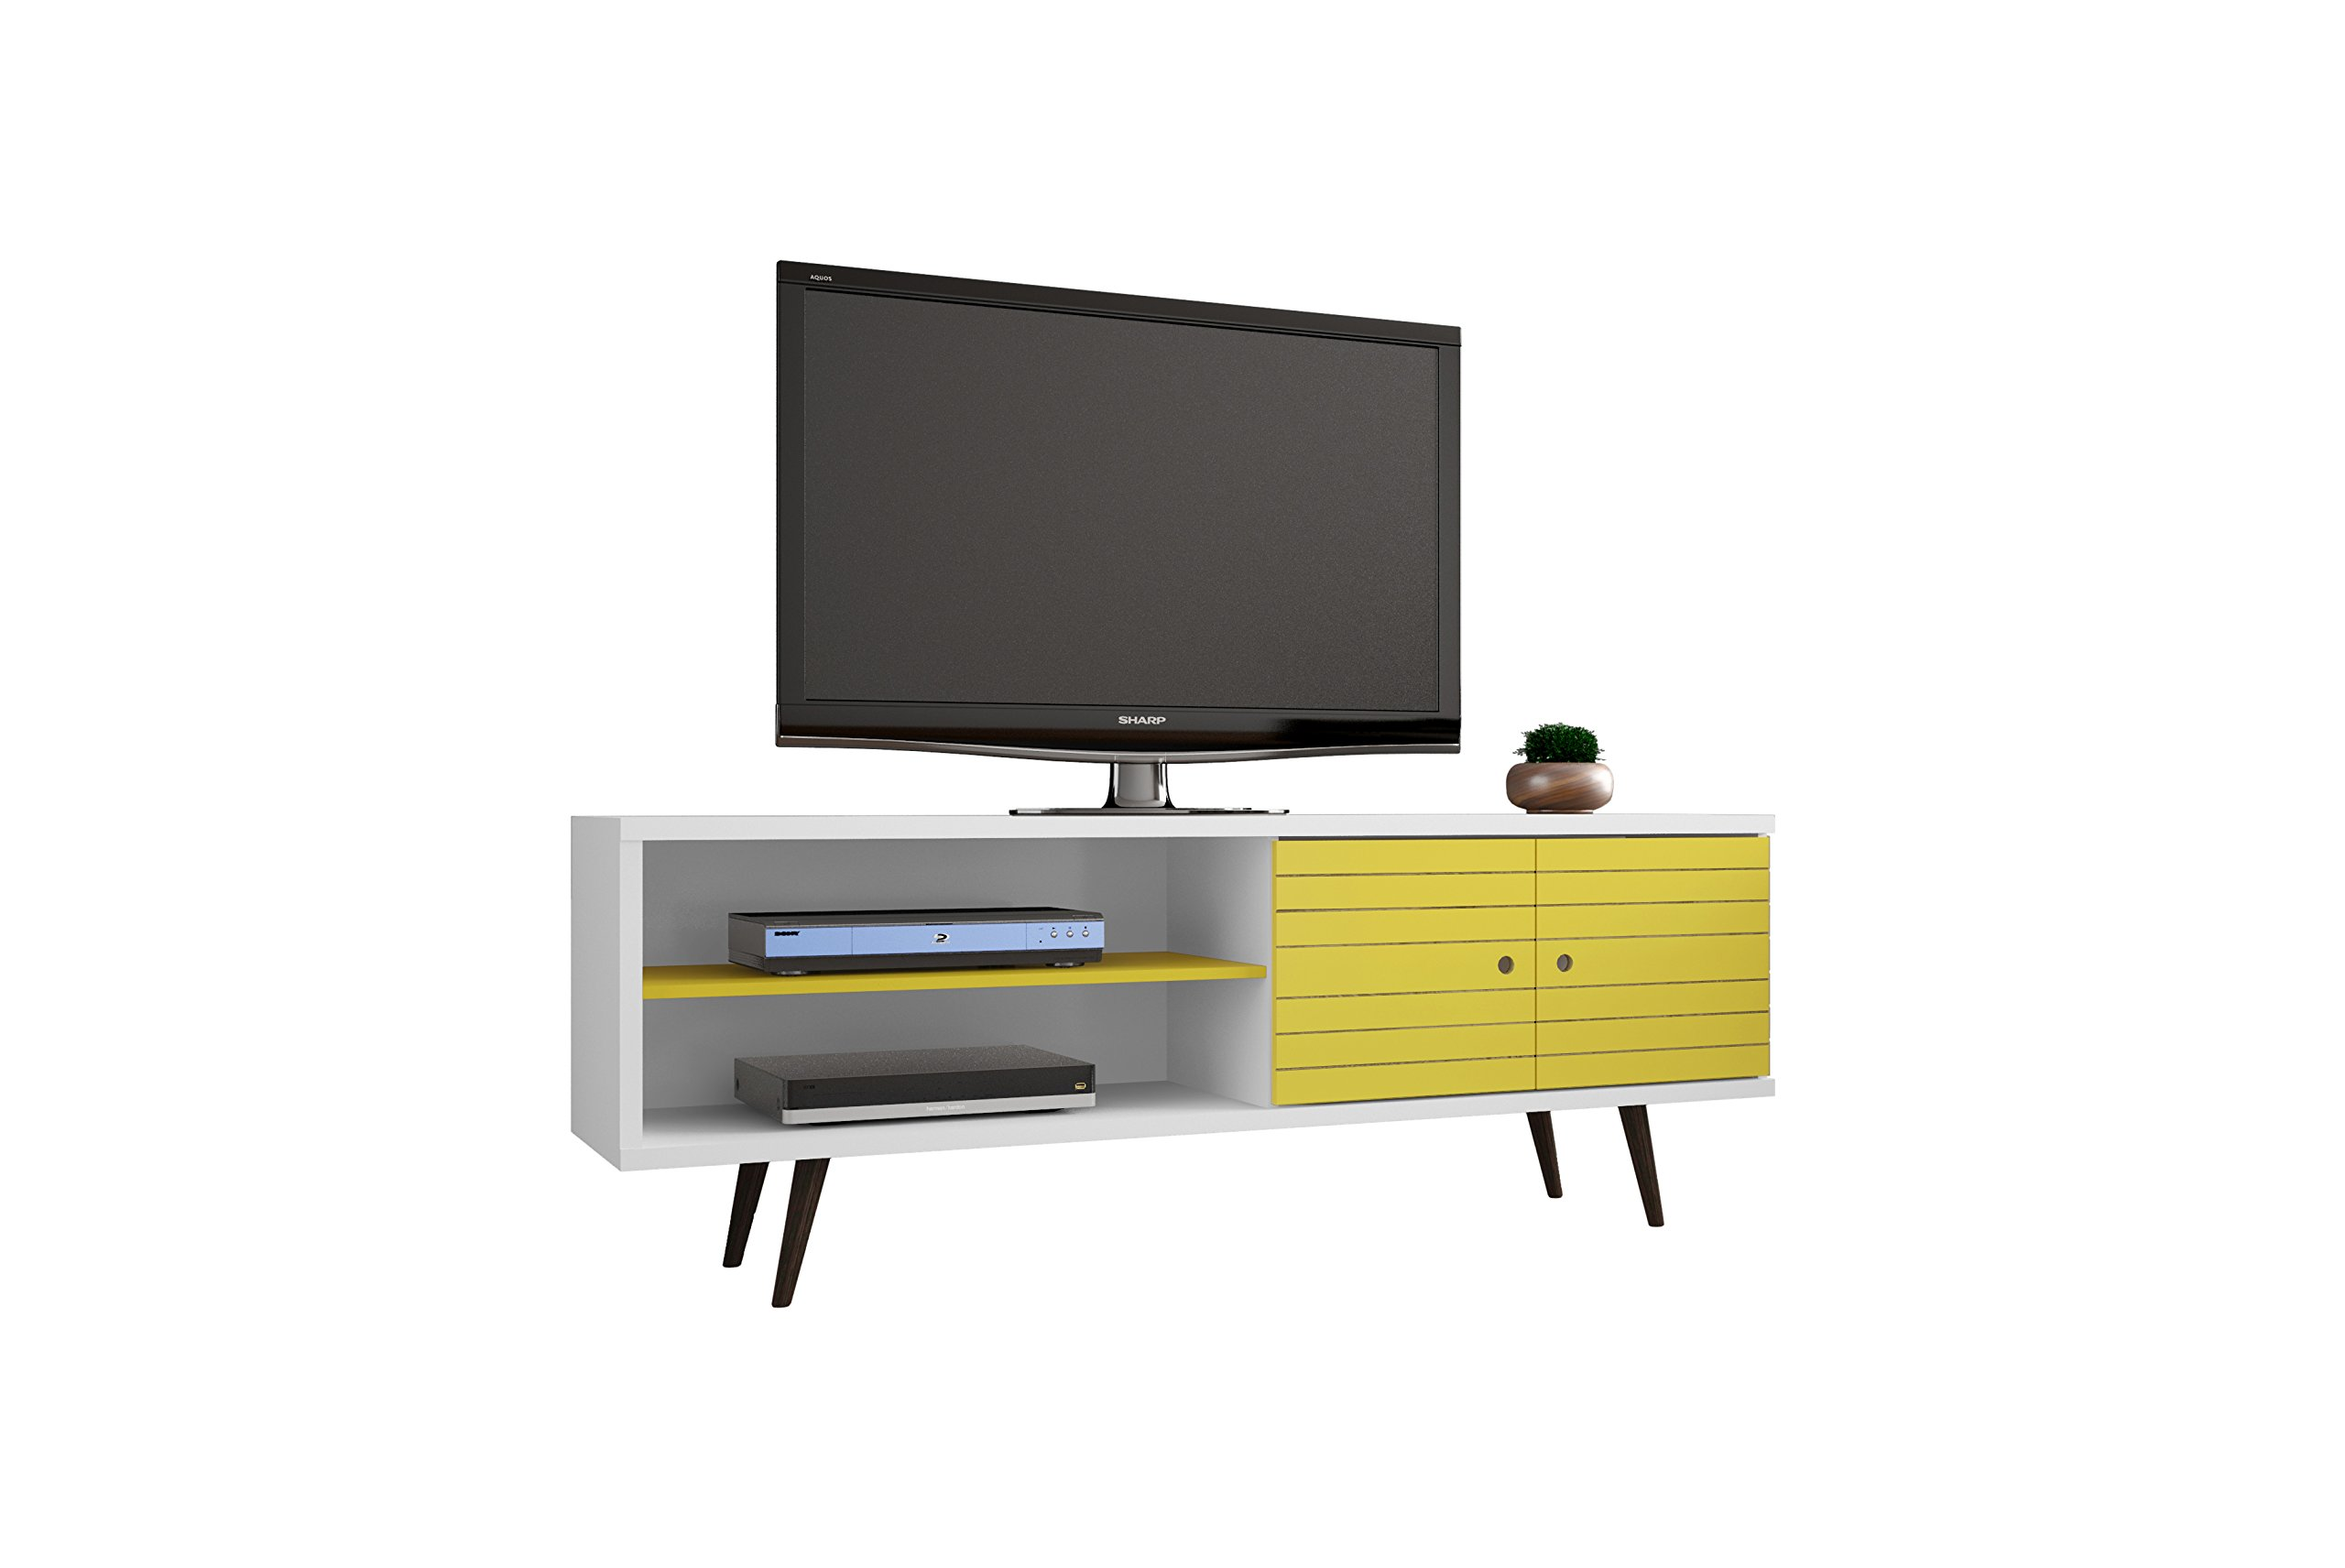 Manhattan Comfort Liberty Collection Mid Century Modern TV Stand With One Cabinet and Two Open Shelves With Splayed Legs, Wood/Yellow by Manhattan Comfort